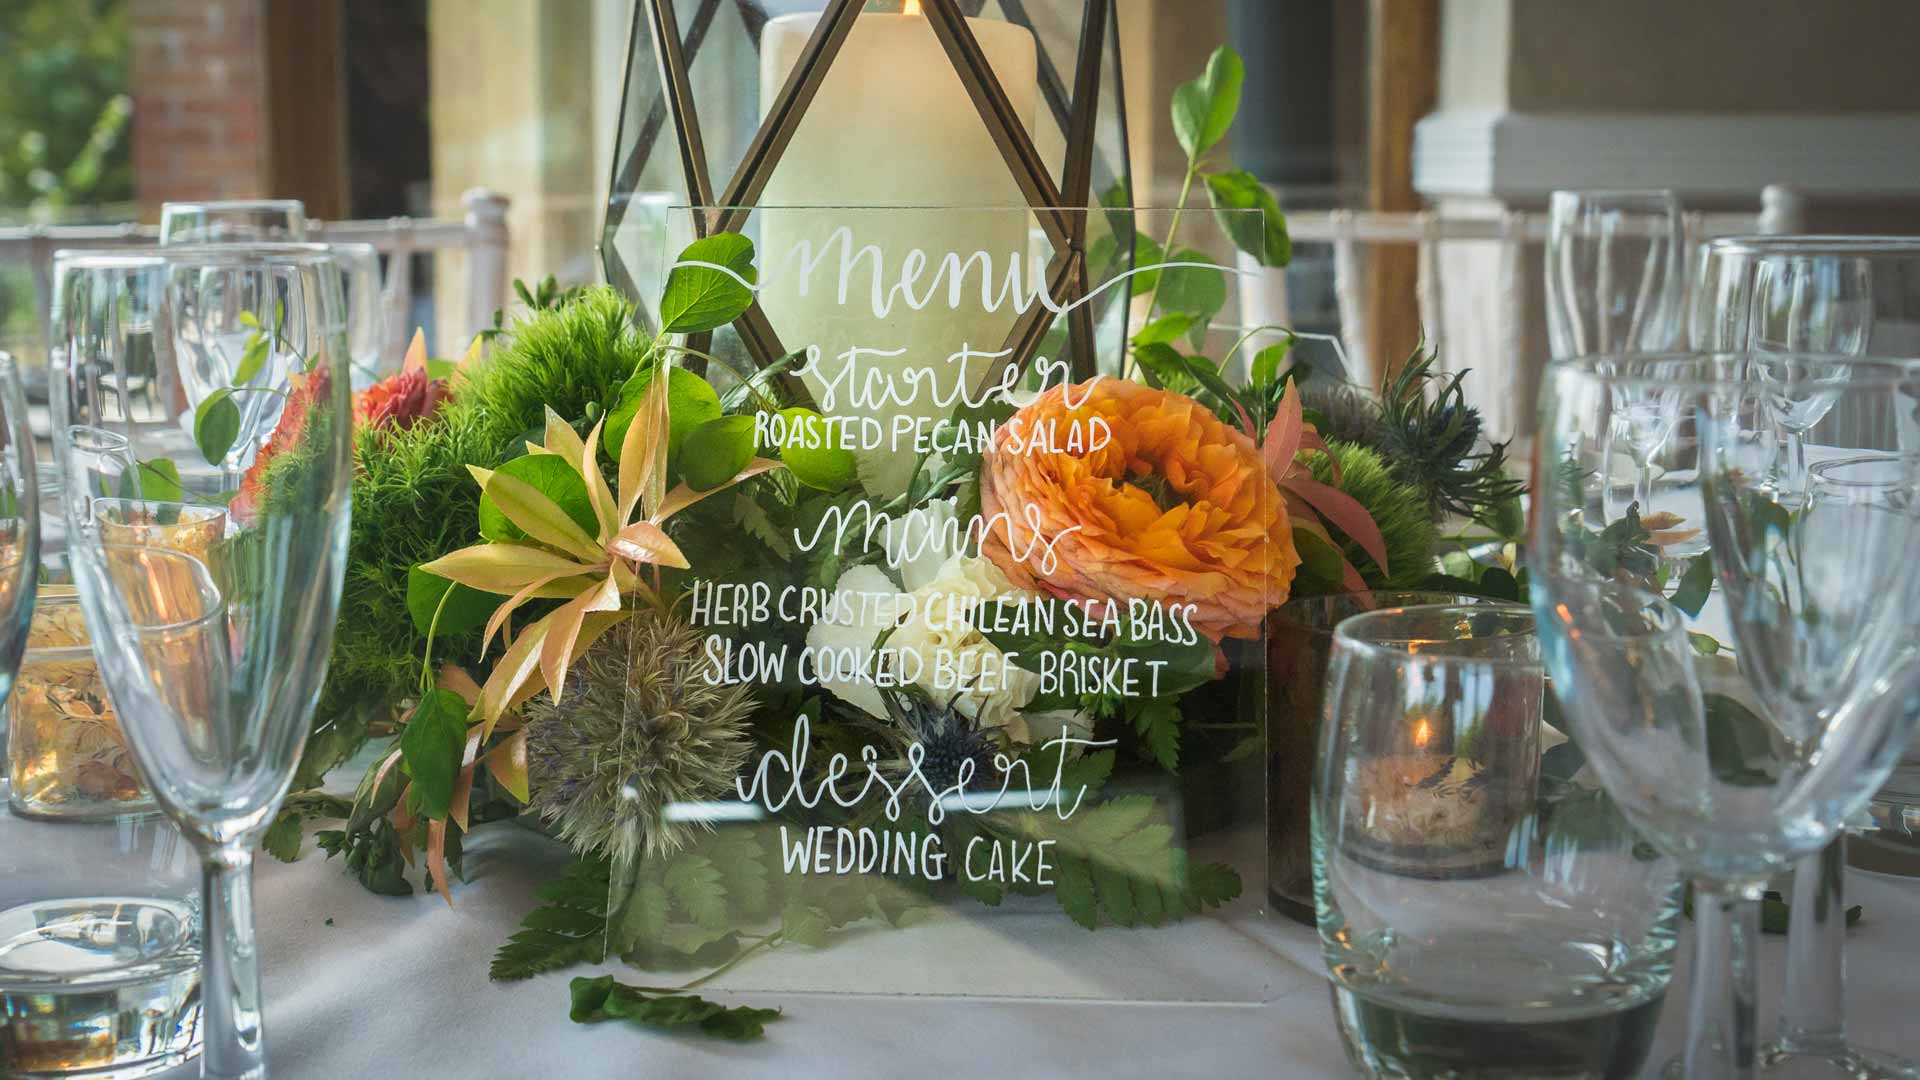 Higher-Trapp-House-Wedding-Venue-Package1